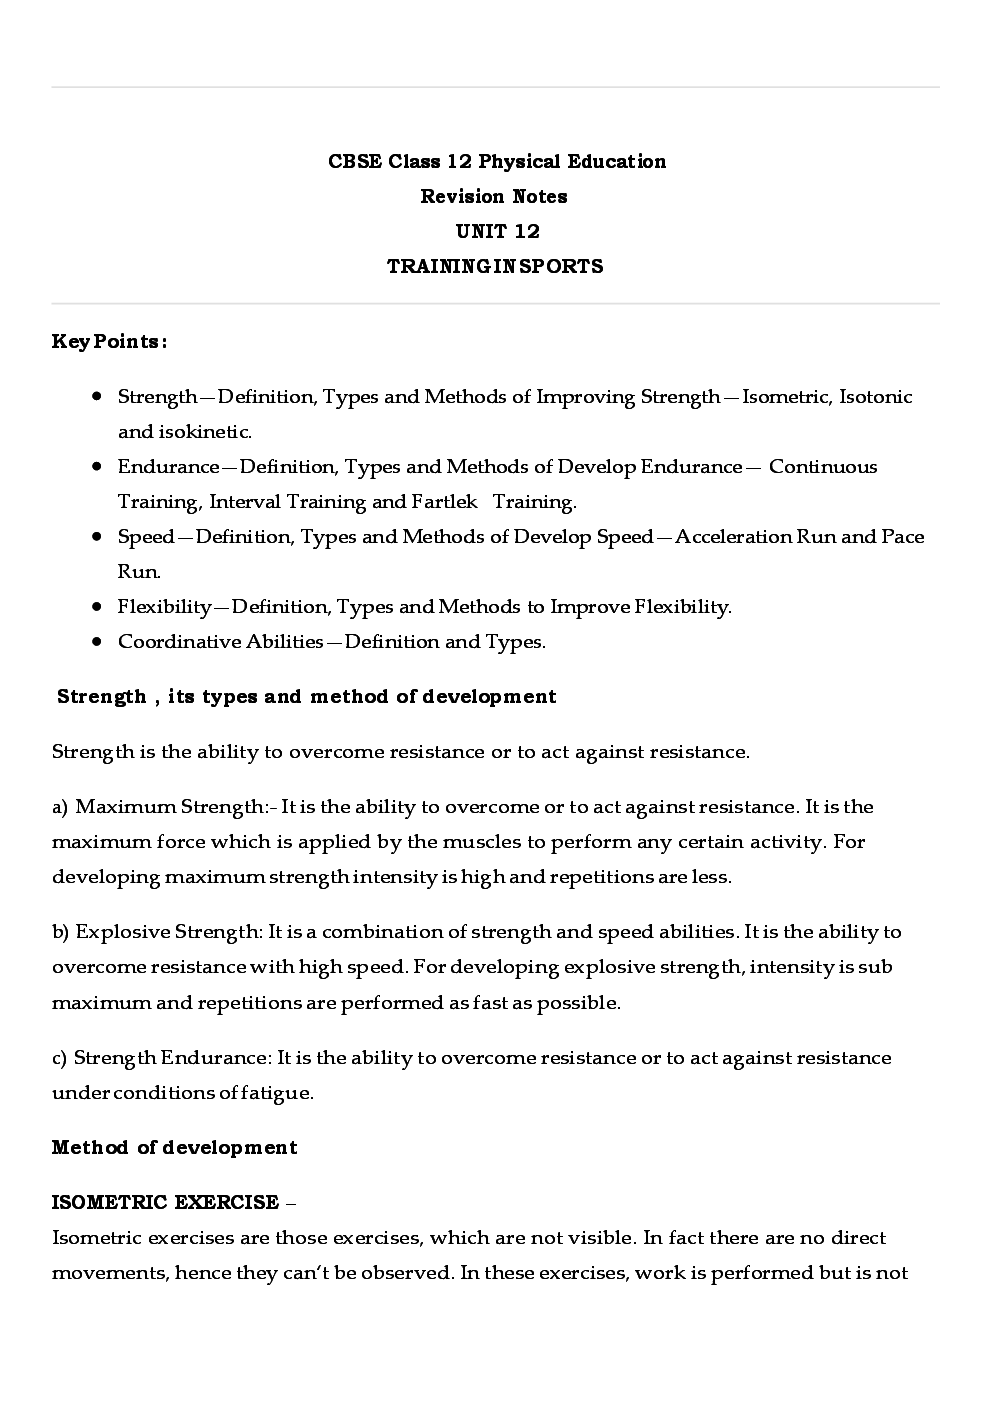 CBSE Class 12 Physical Education Revision Notes Training And Sports - Page 2